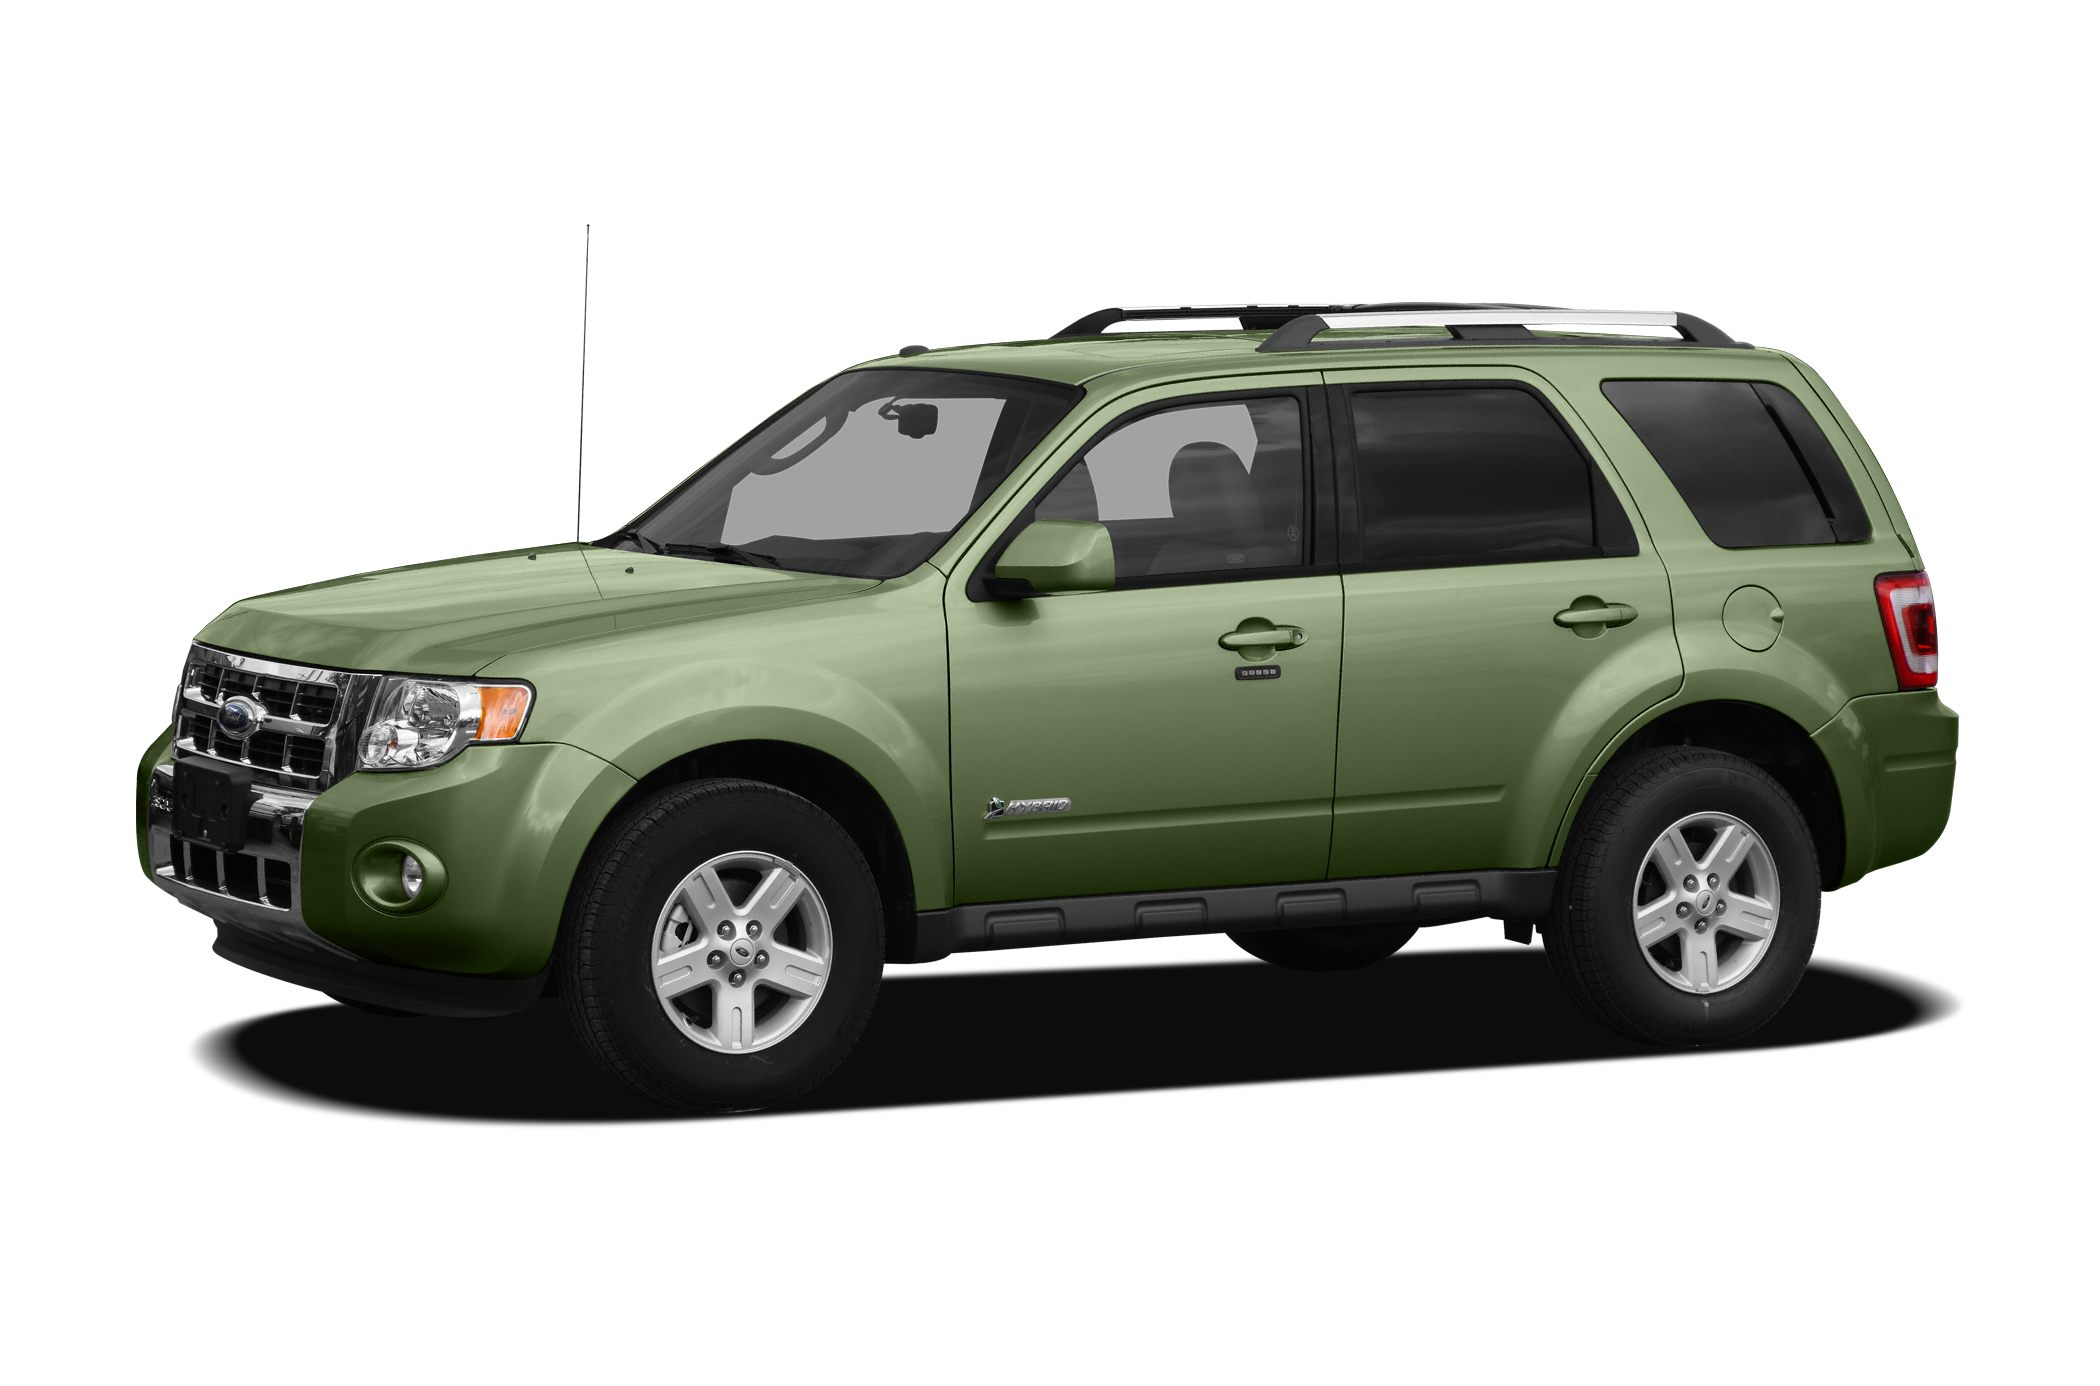 2009 Ford Escape Hybrid Limited SUV for sale in Stillwater for $15,895 with 75,078 miles.